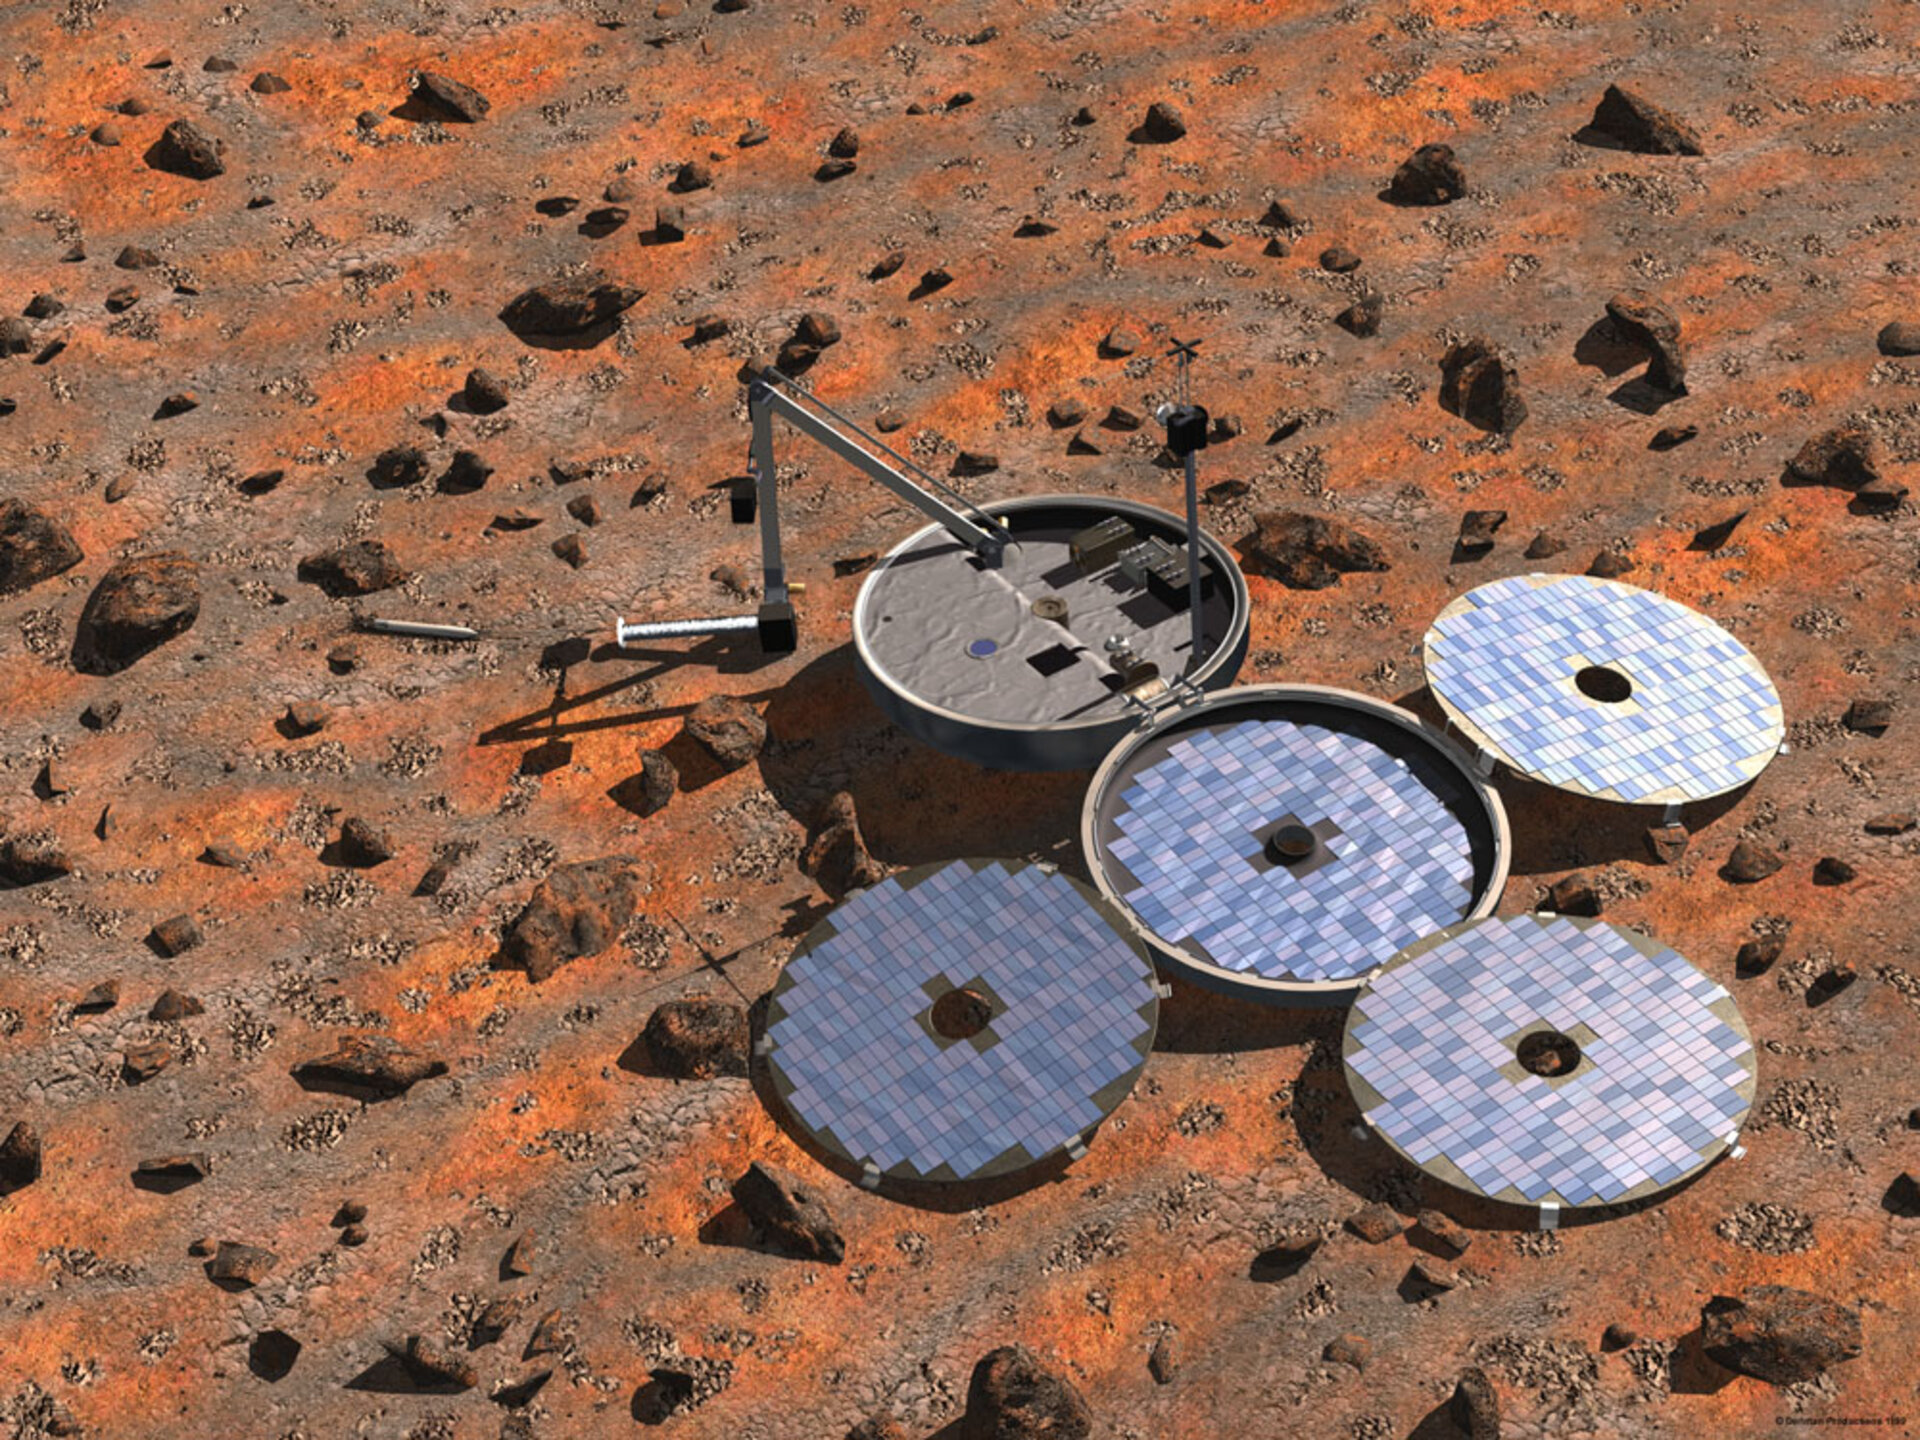 Beagle-2 is scheduled to land on Mars at Christmas